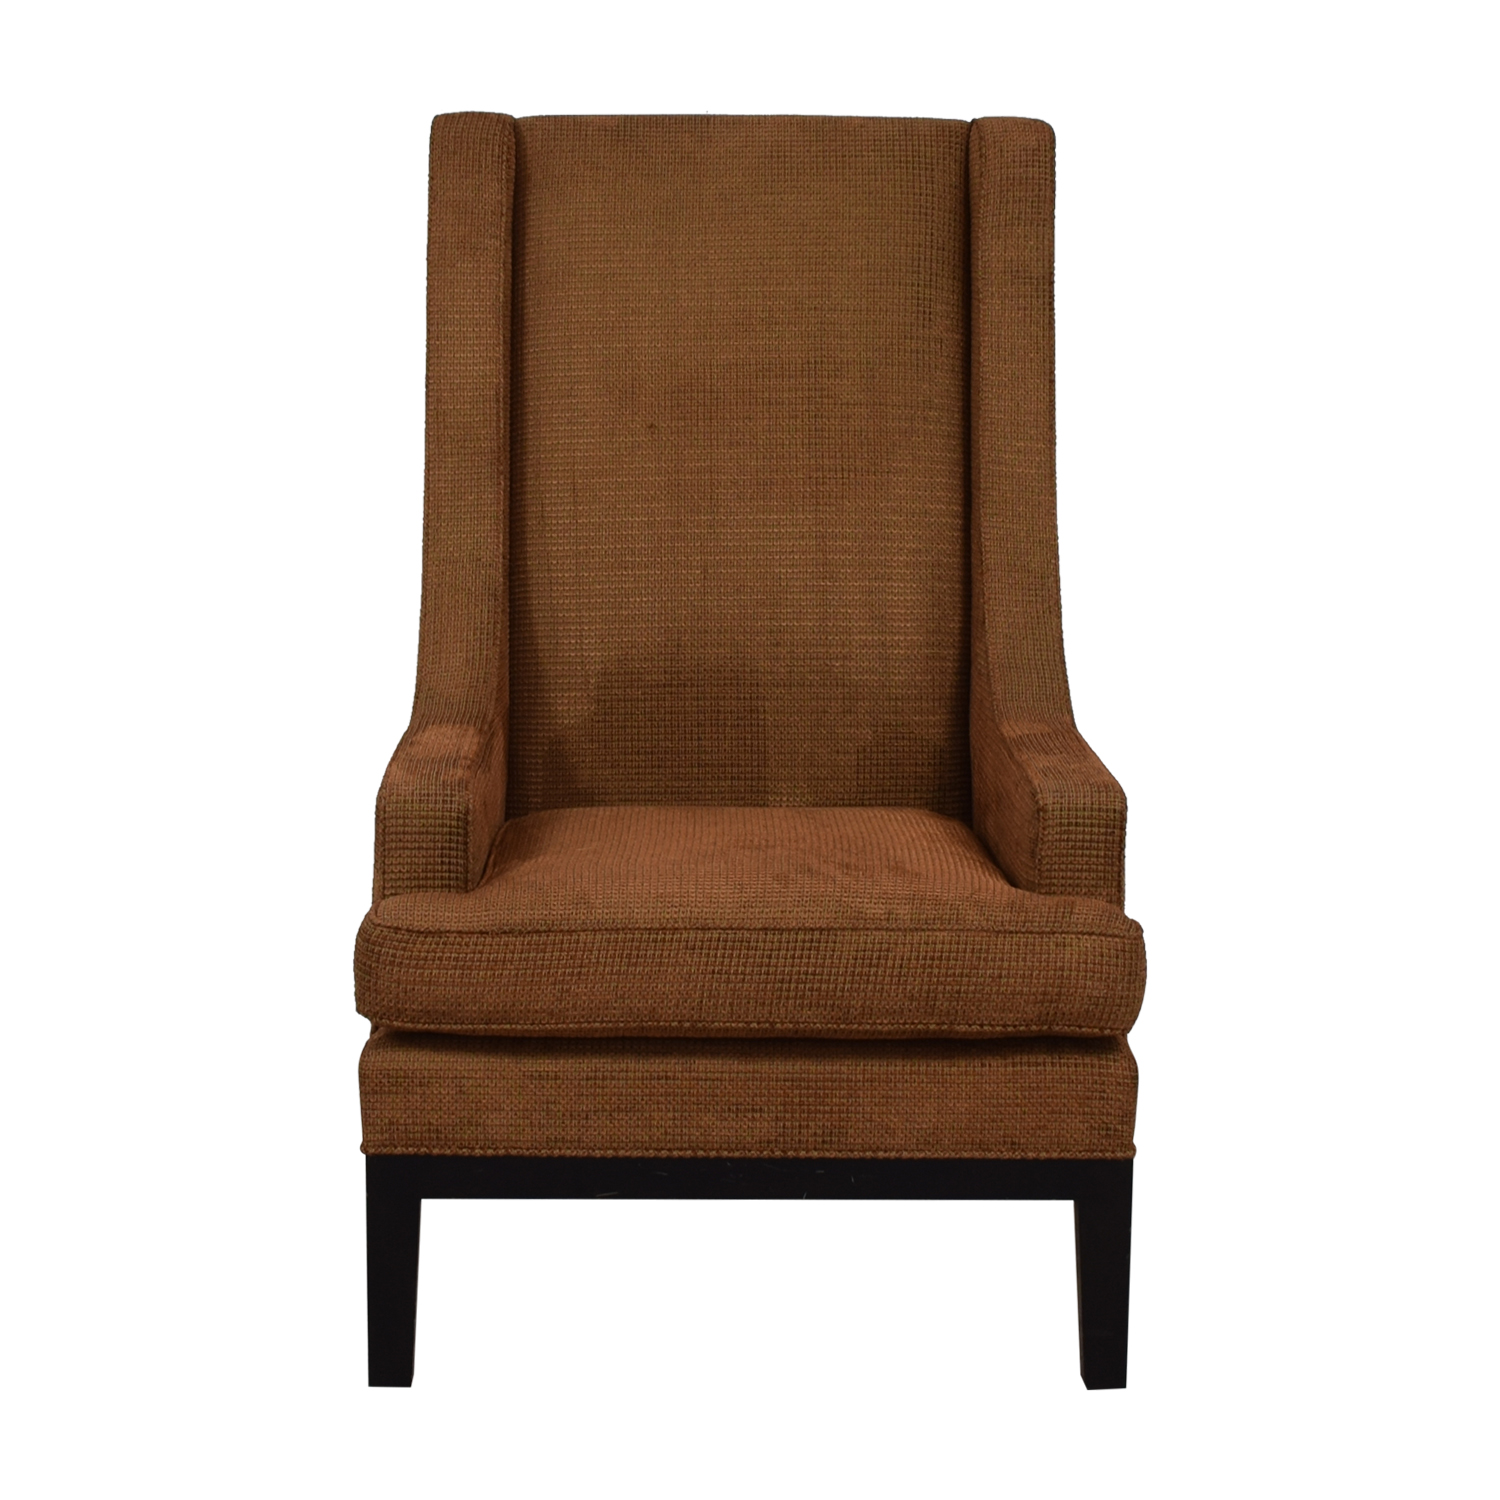 Furniture Masters Furniture Masters Brown Upholstered Accent Chair price